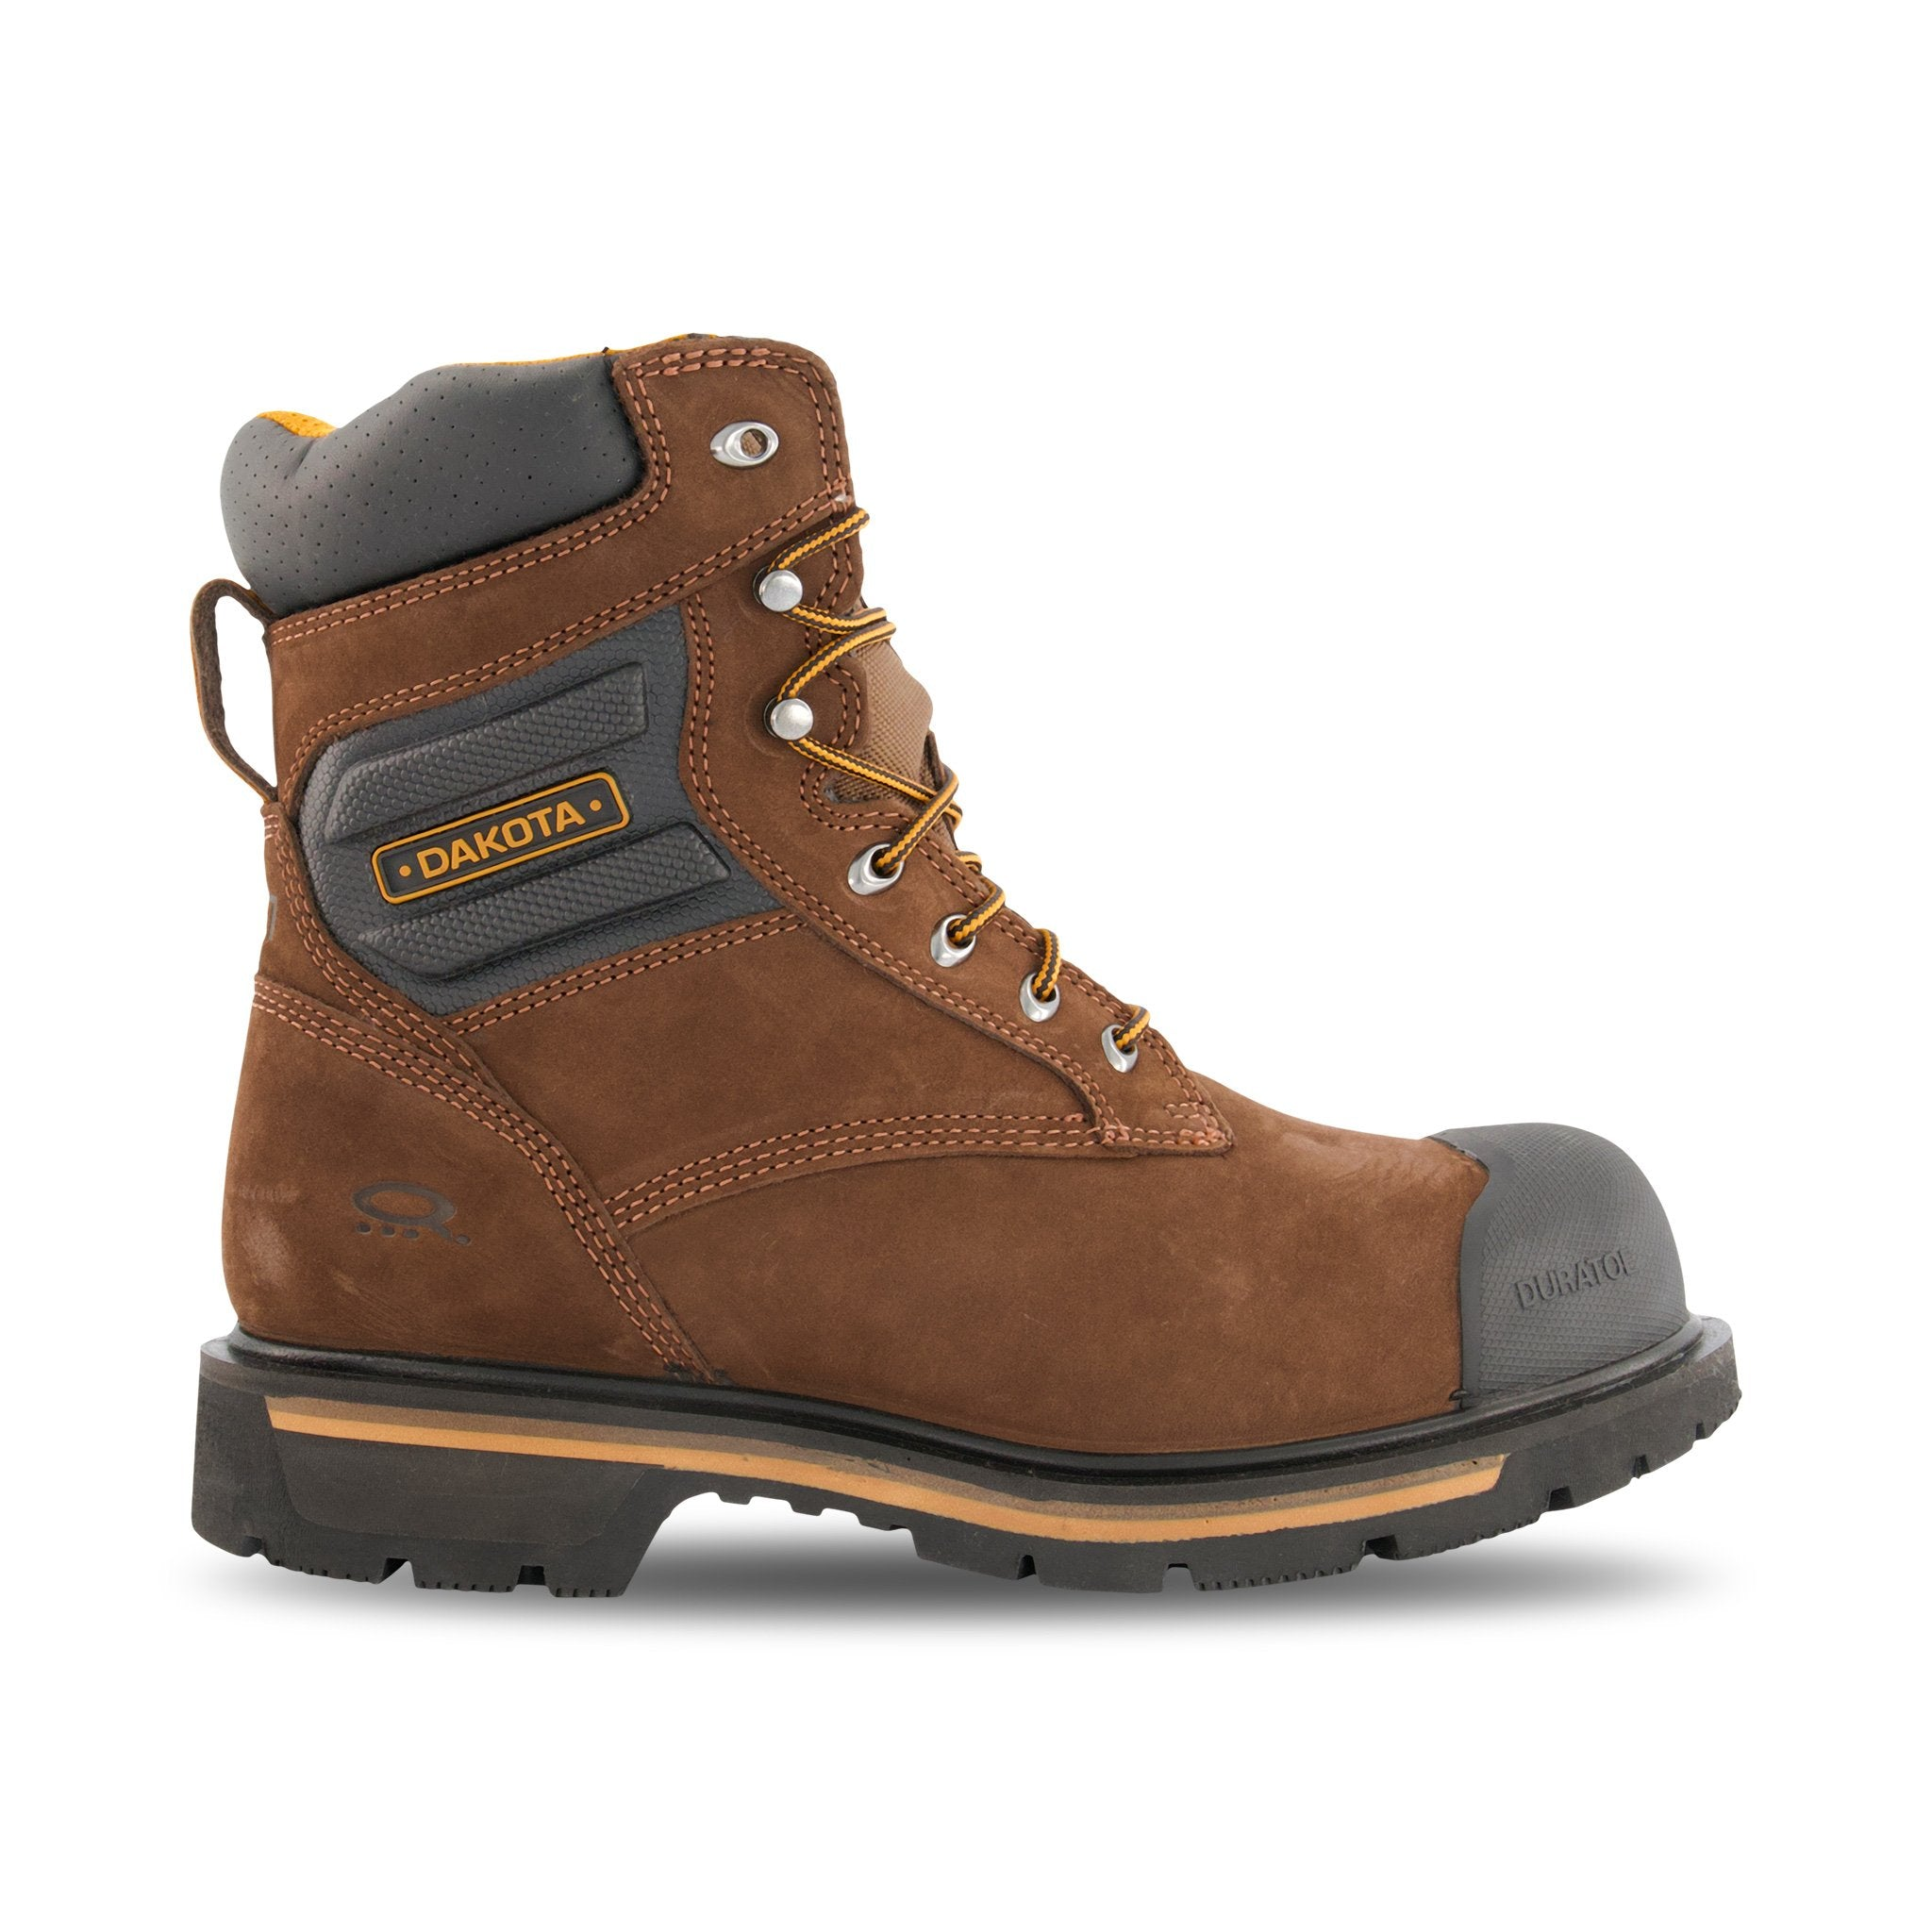 Men's 8 Inch Safety Work Boots Aluminum